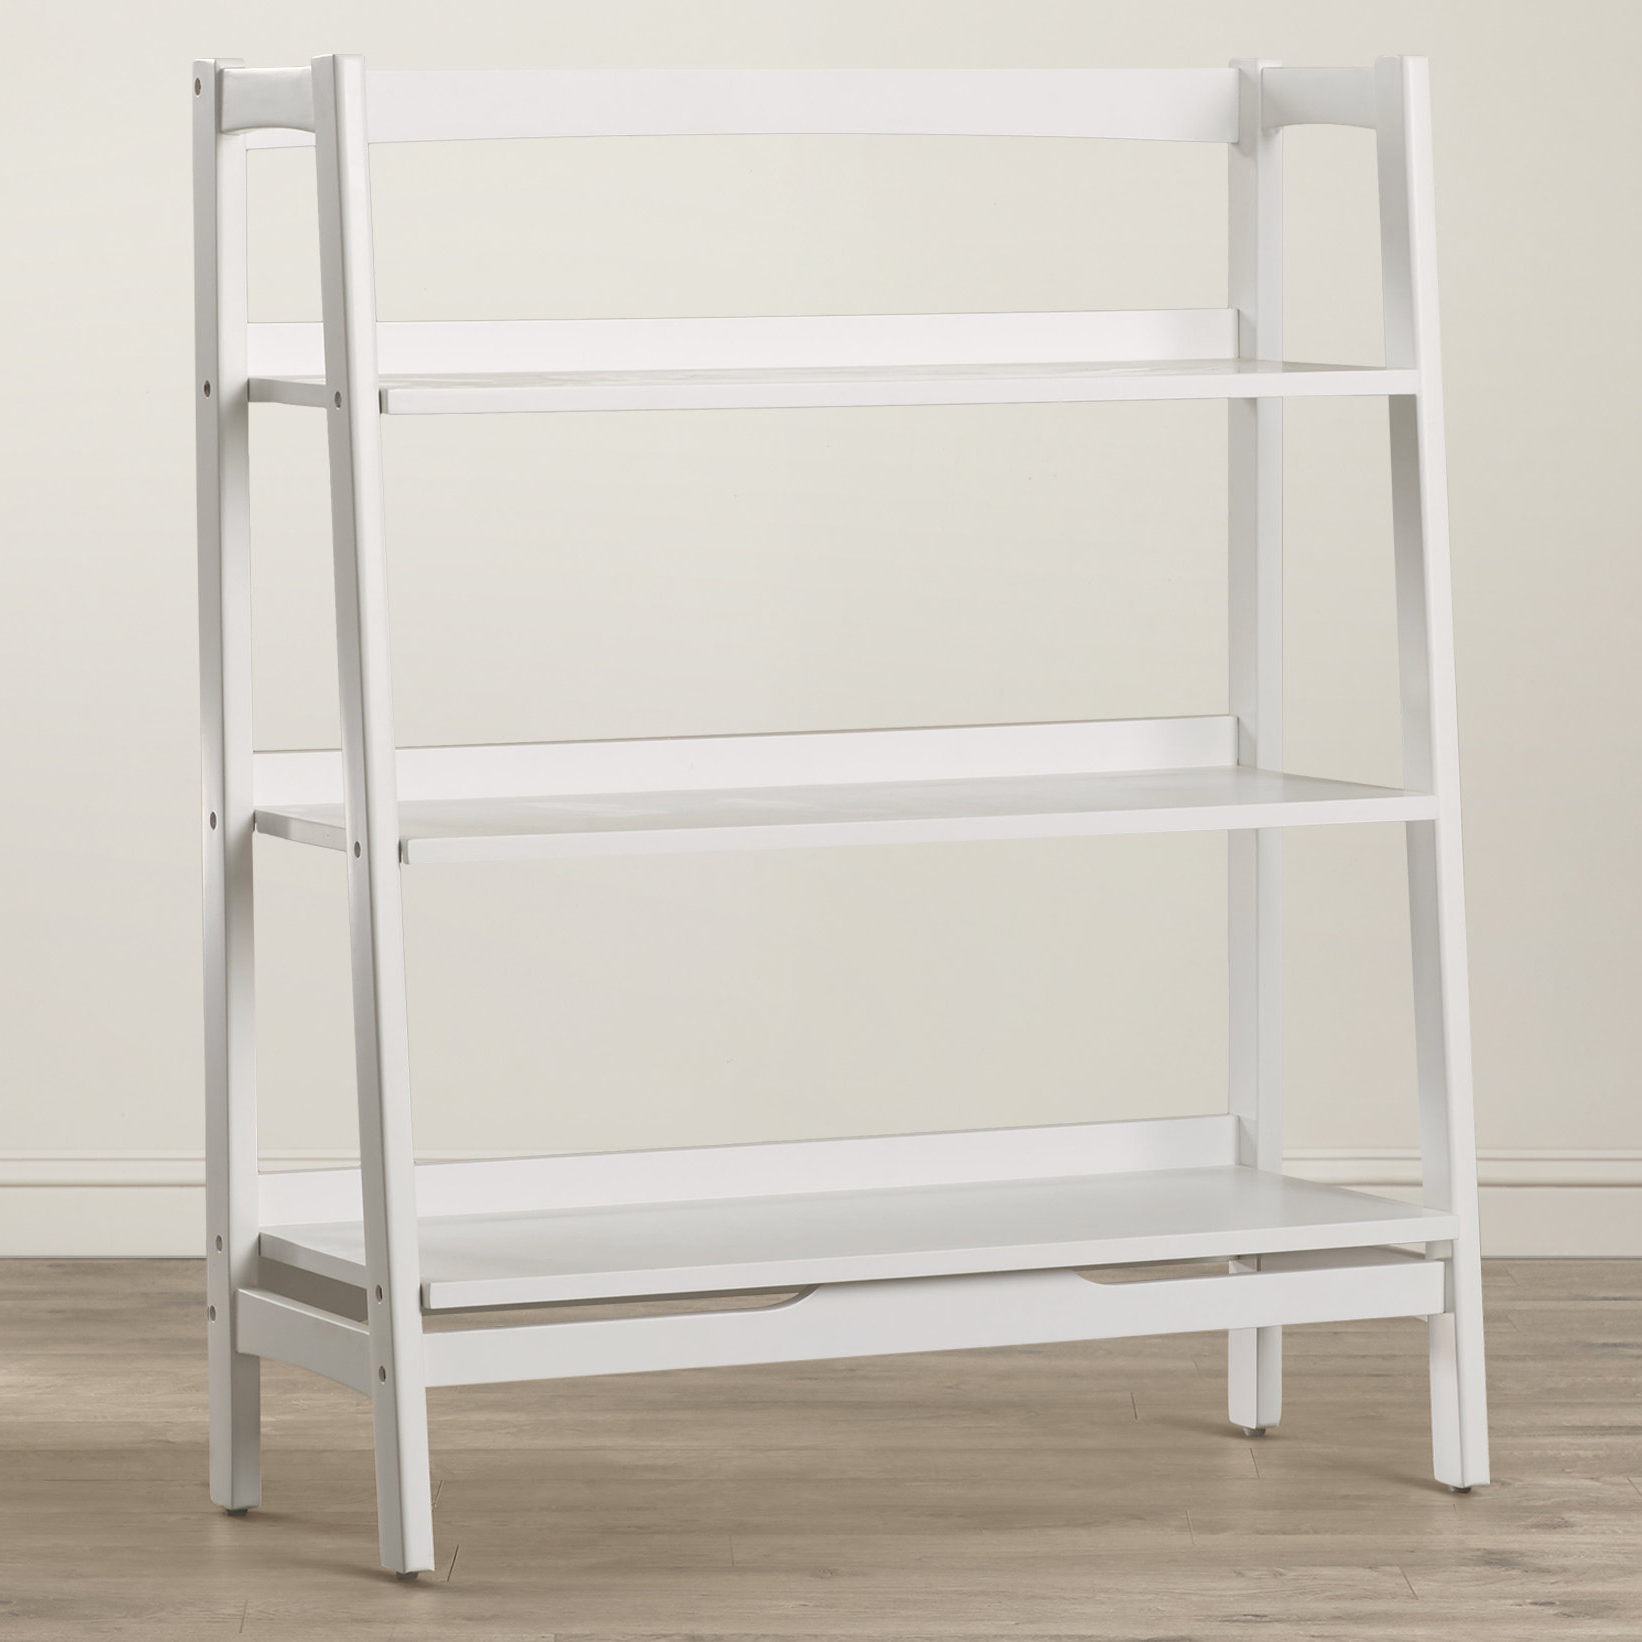 Destiny Etagere Bookcase With Most Current Destiny Etagere Bookcases (View 6 of 20)